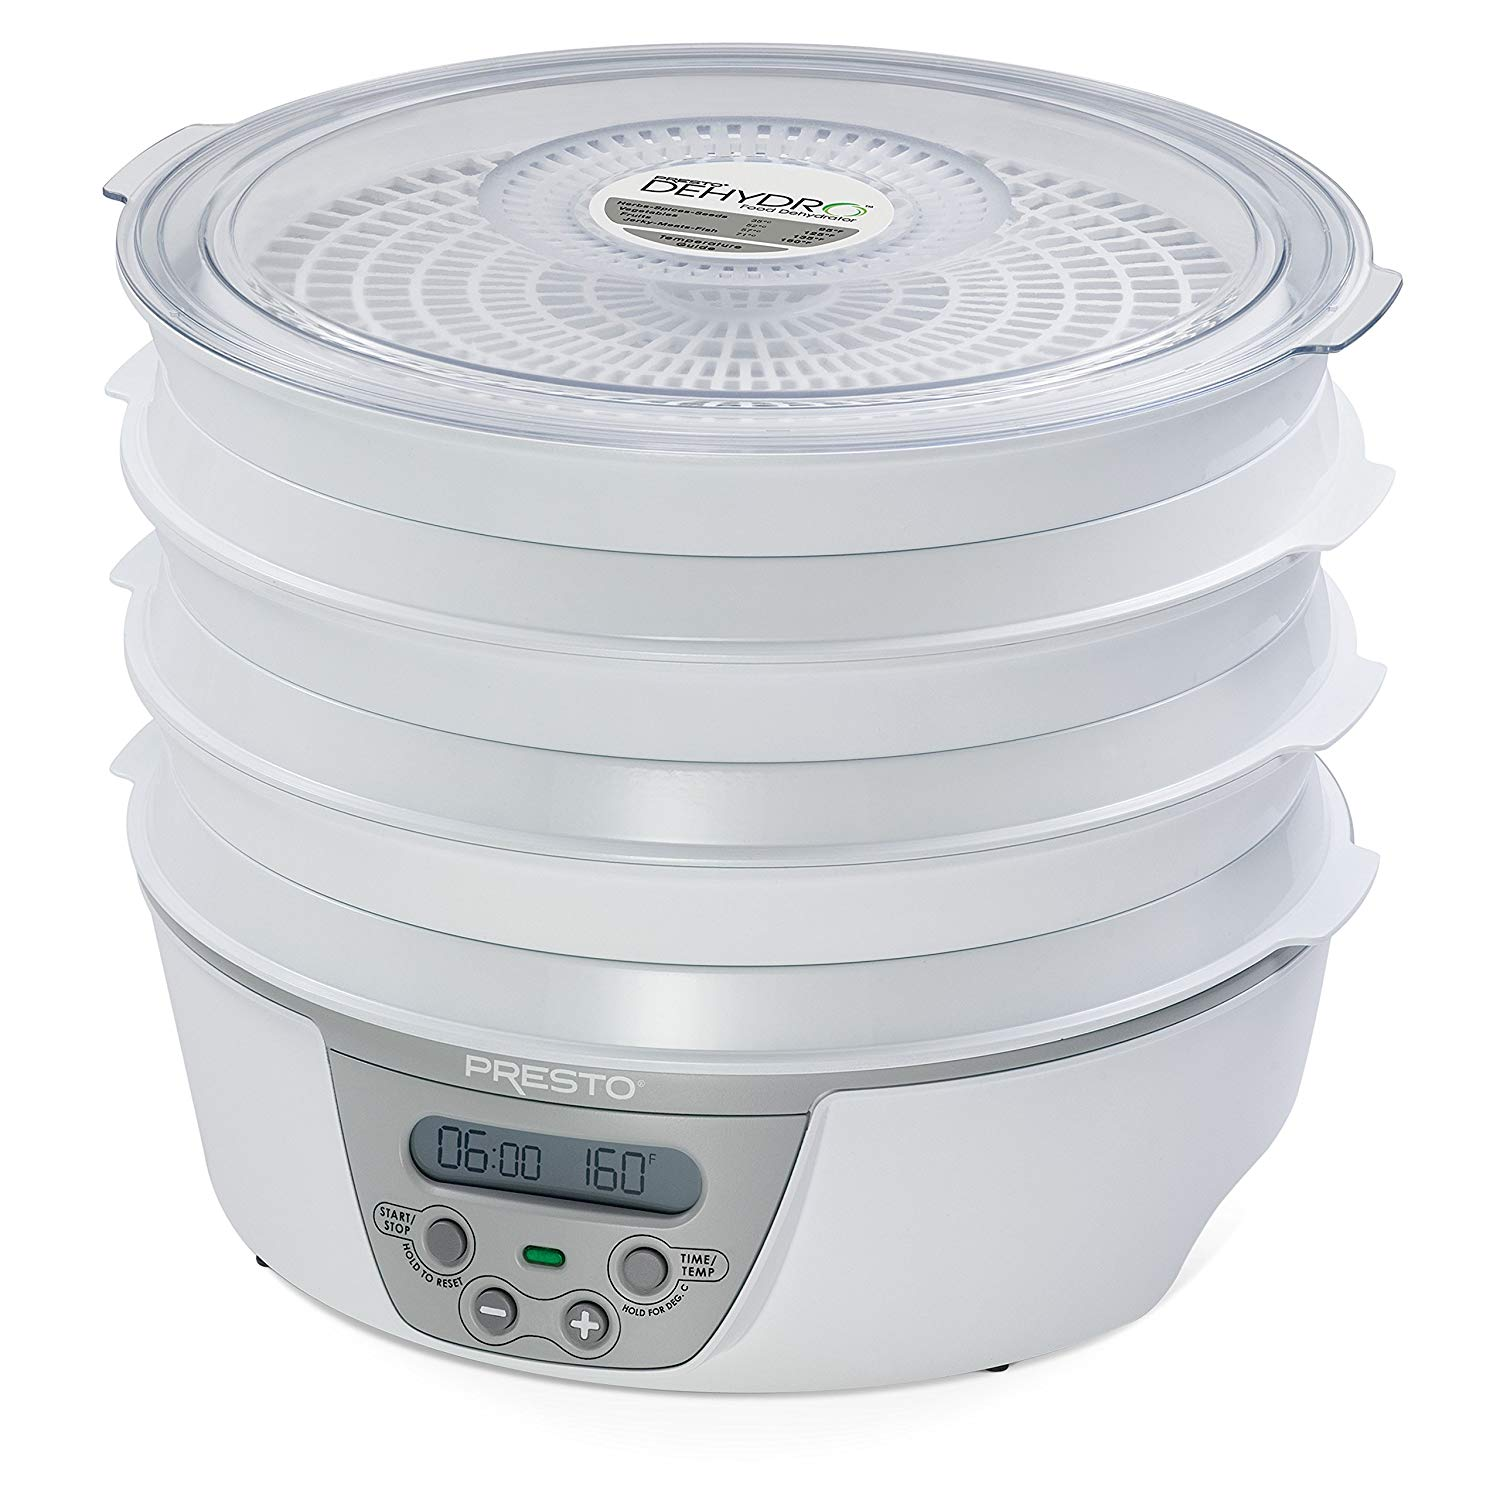 9. Presto 06301 Dehydro Digital Electric Food Dehydrator